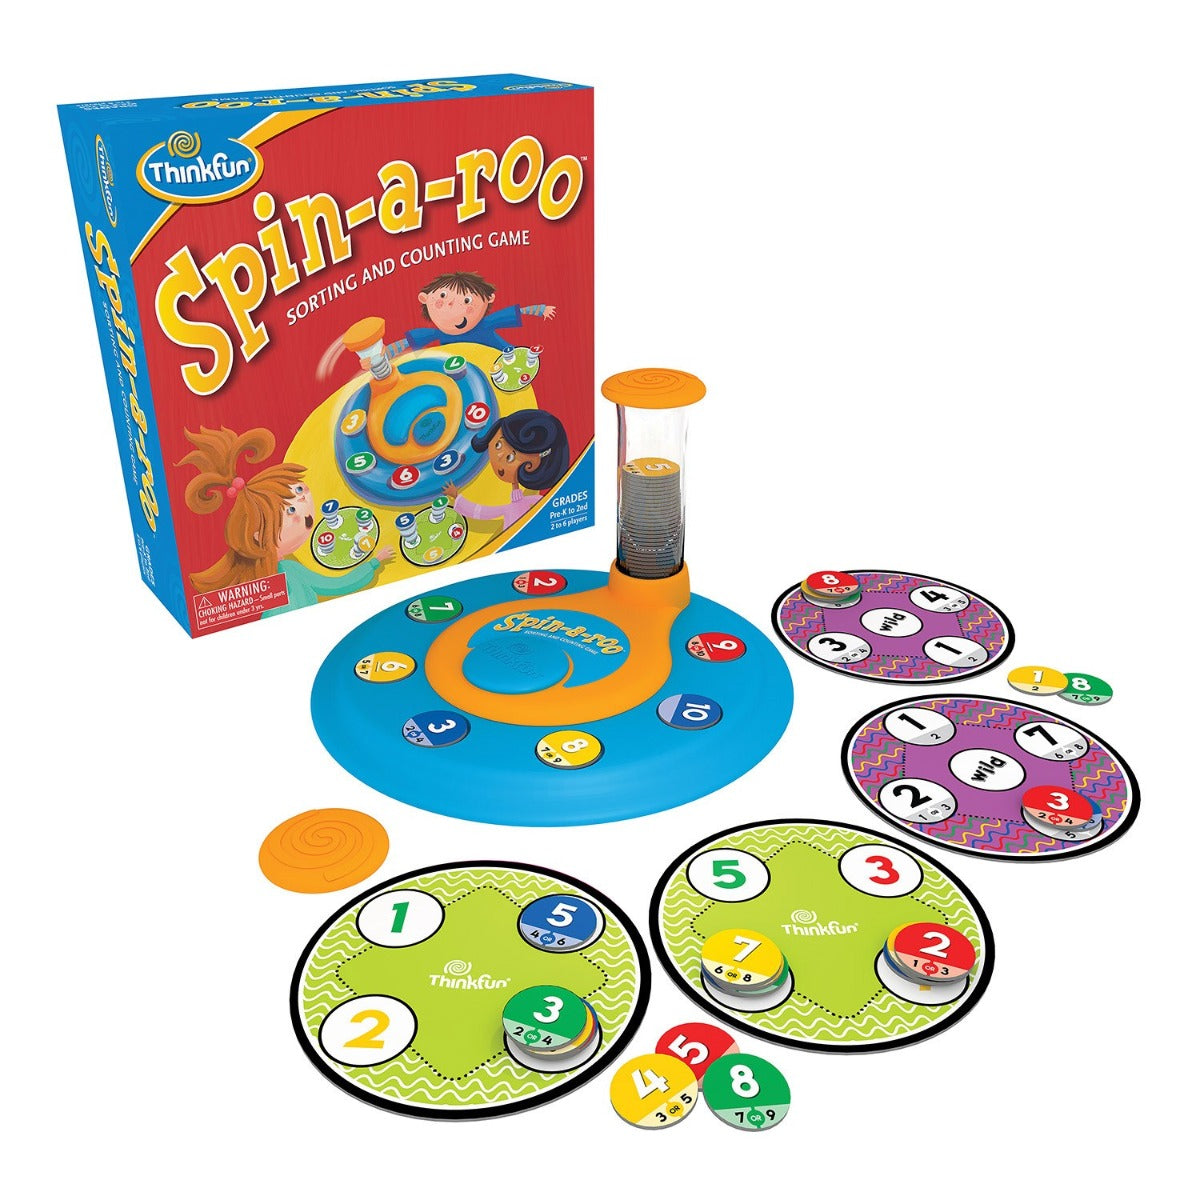 Thinkfun Spin-a-Roo Sorting and Counting Game available at Little Sprout